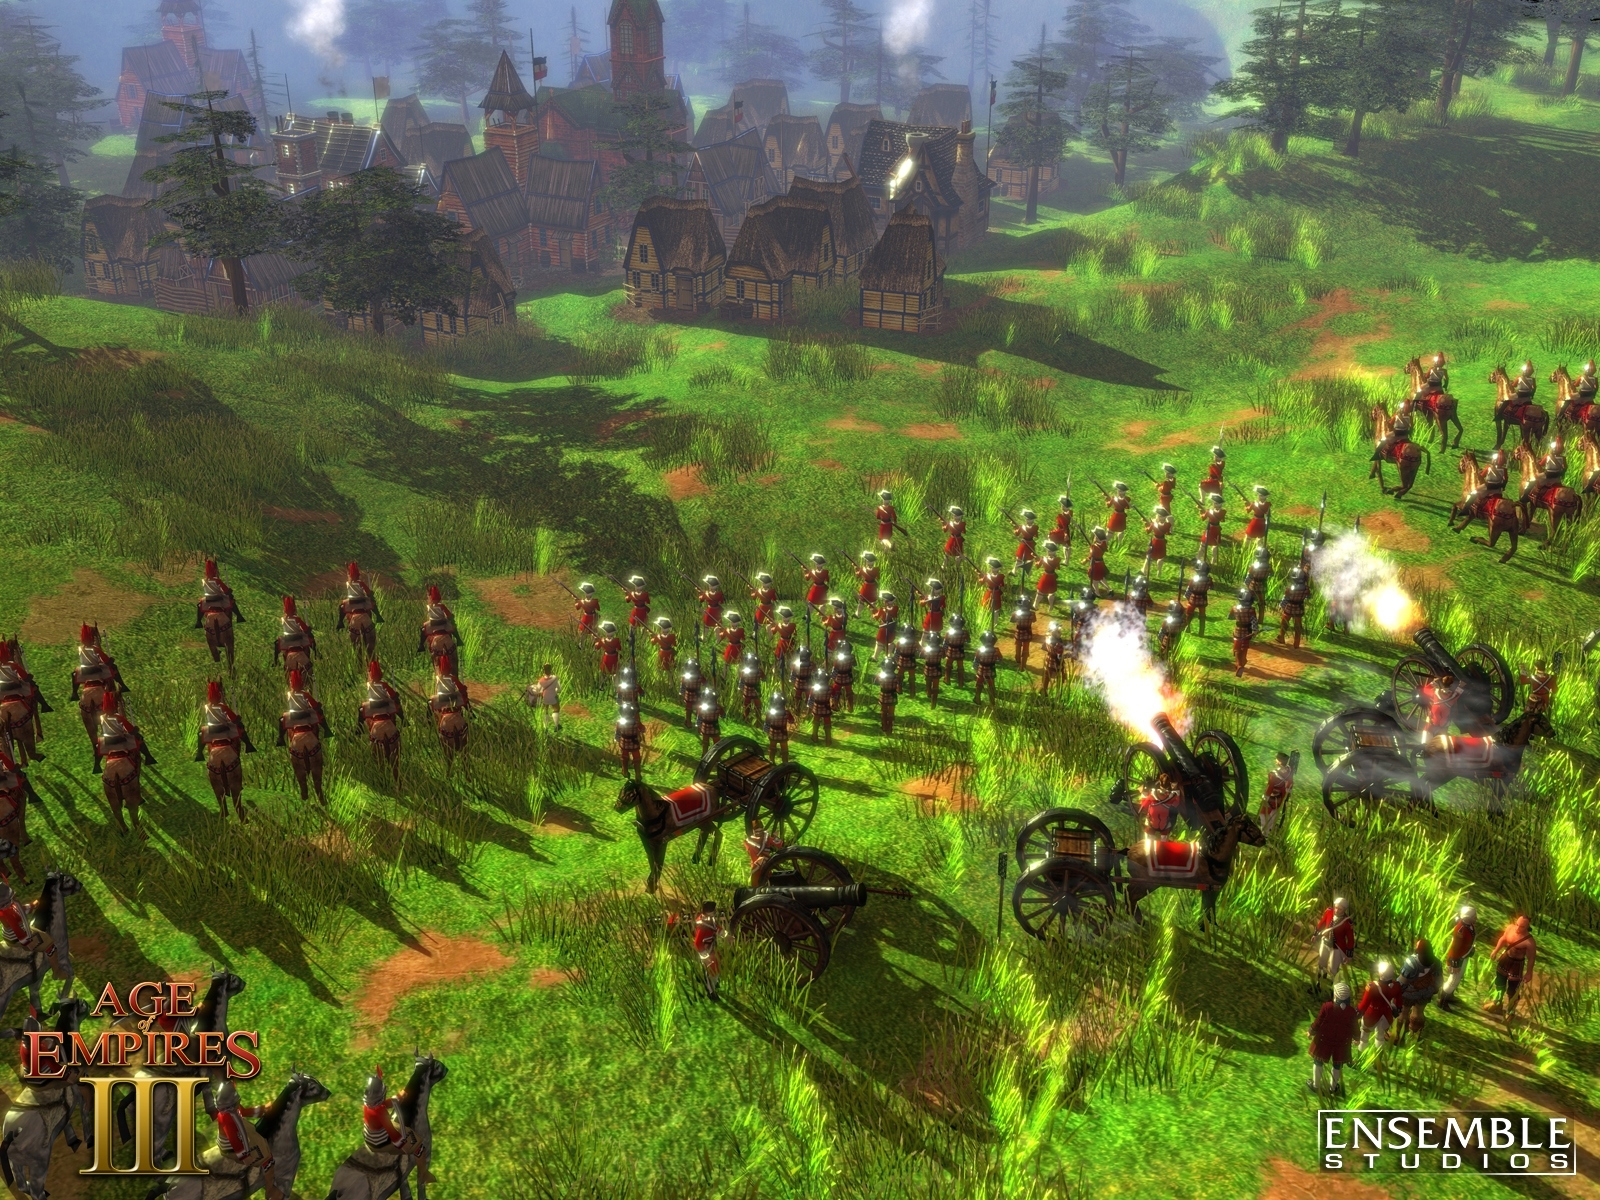 age of empires 3 definitive edition pc